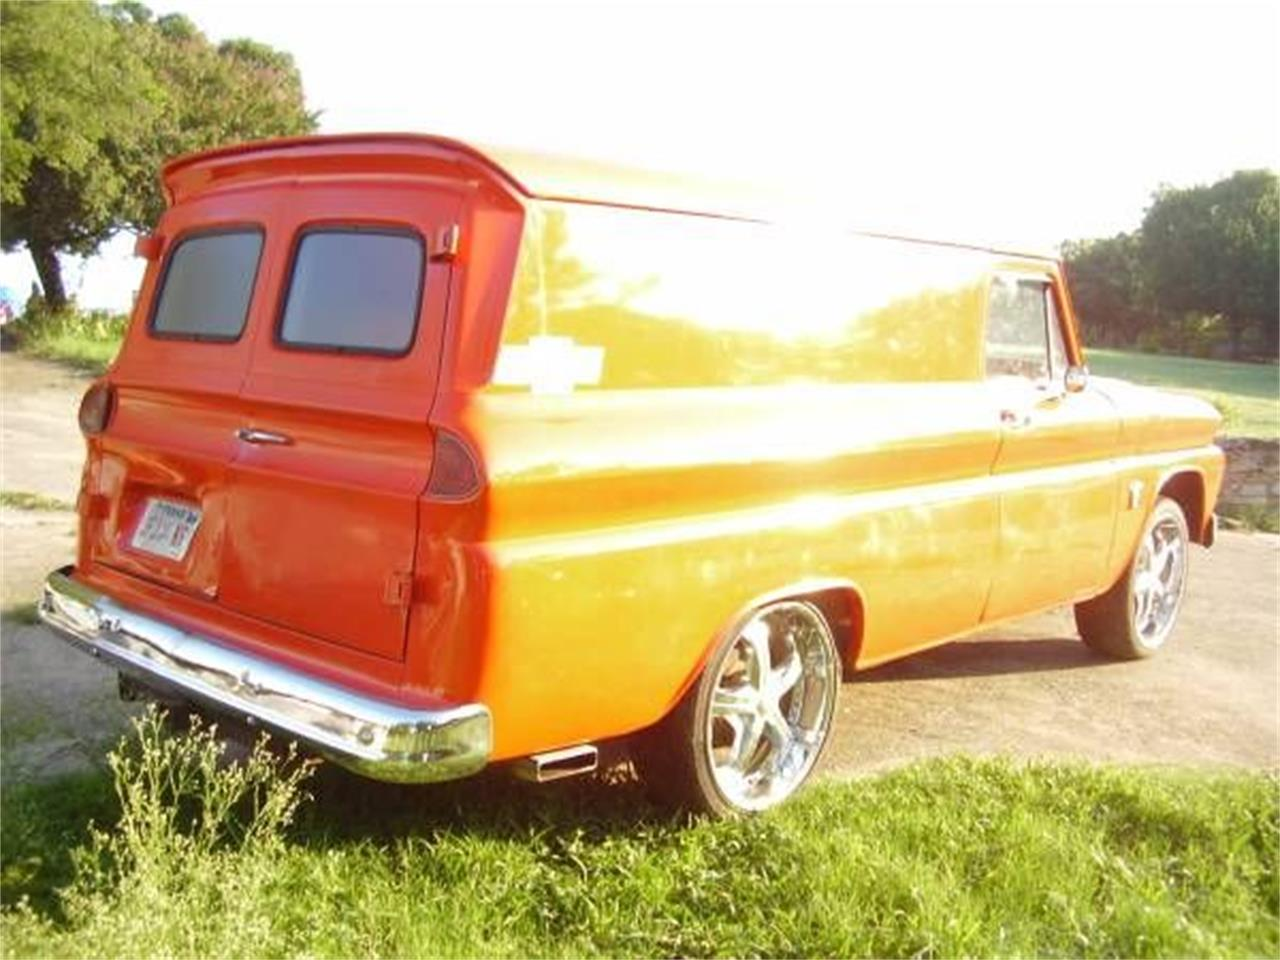 1966 Chevrolet Panel Truck For Sale Cc 1123912 Chevy C10 Door Panels Large Picture Of 66 O37s